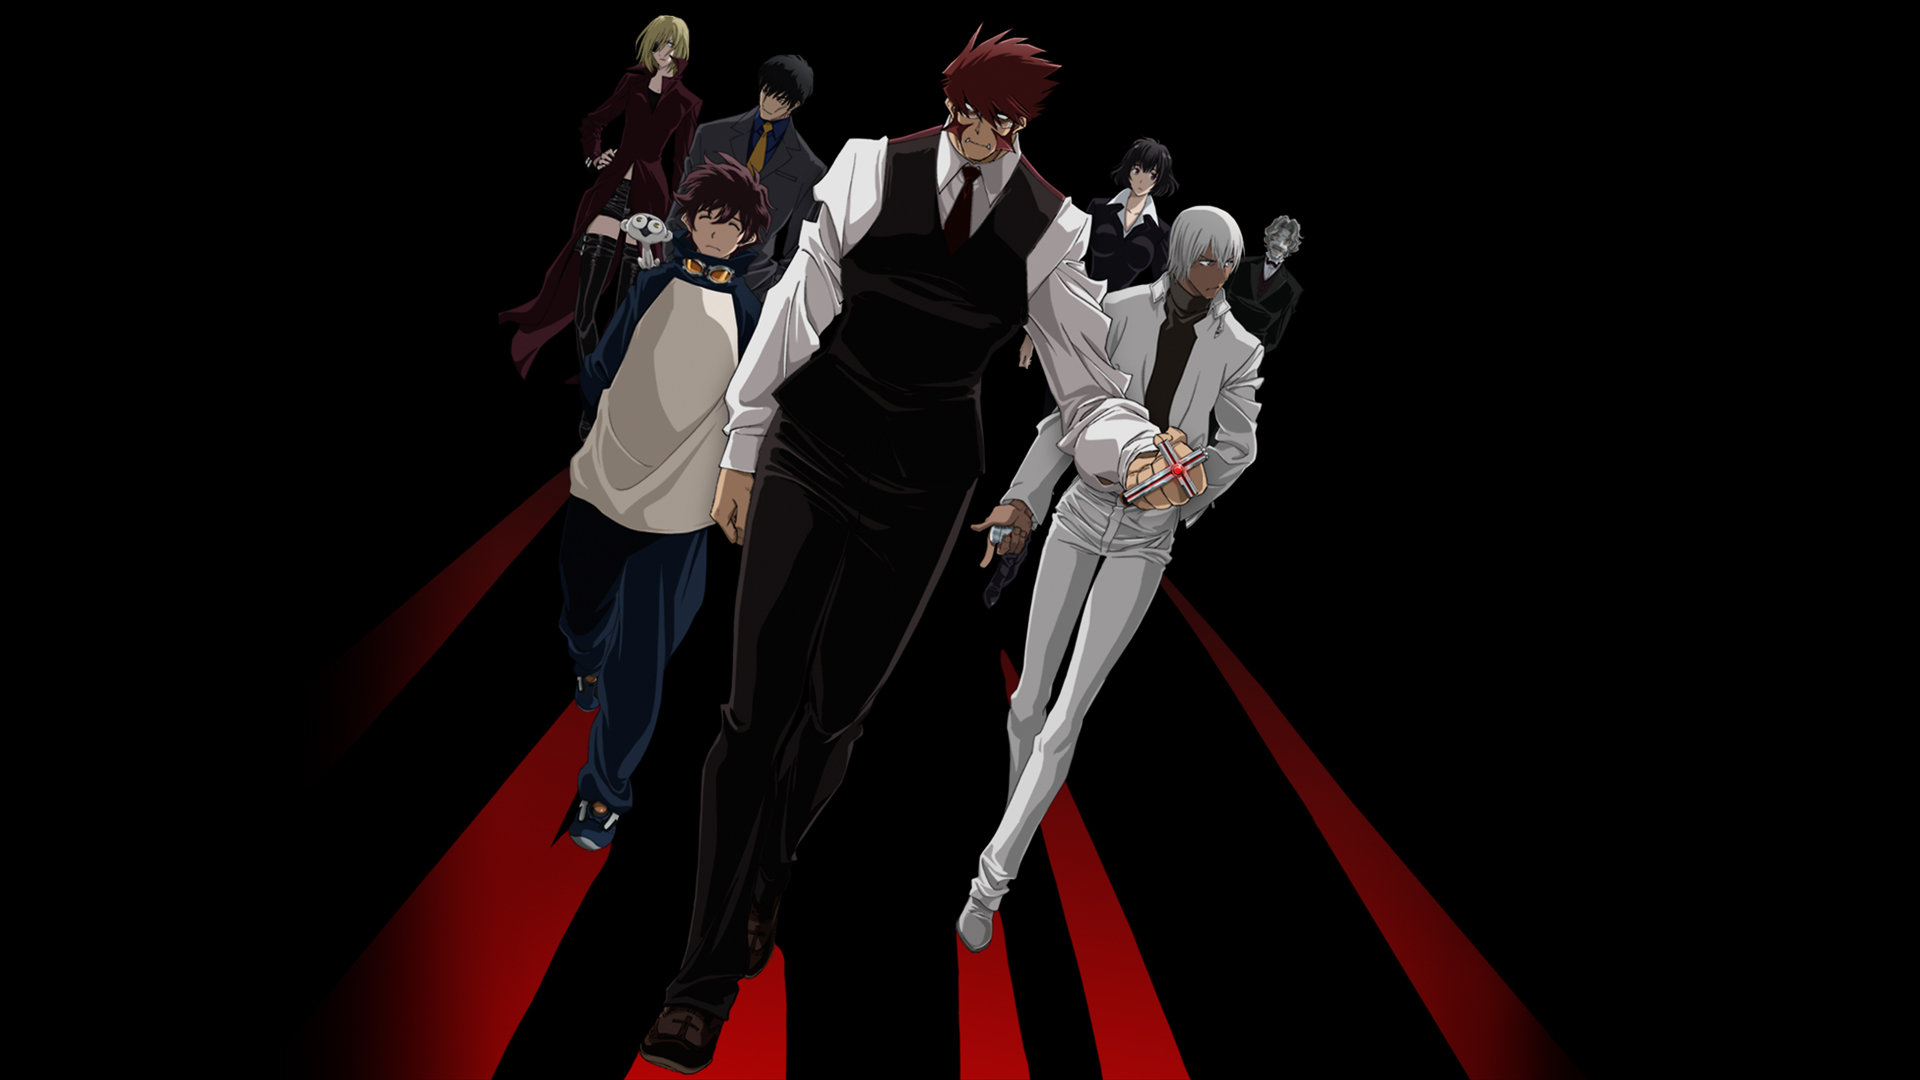 Awesome Blood Blockade Battlefront free background ID:342452 for hd 1920x1080 computer